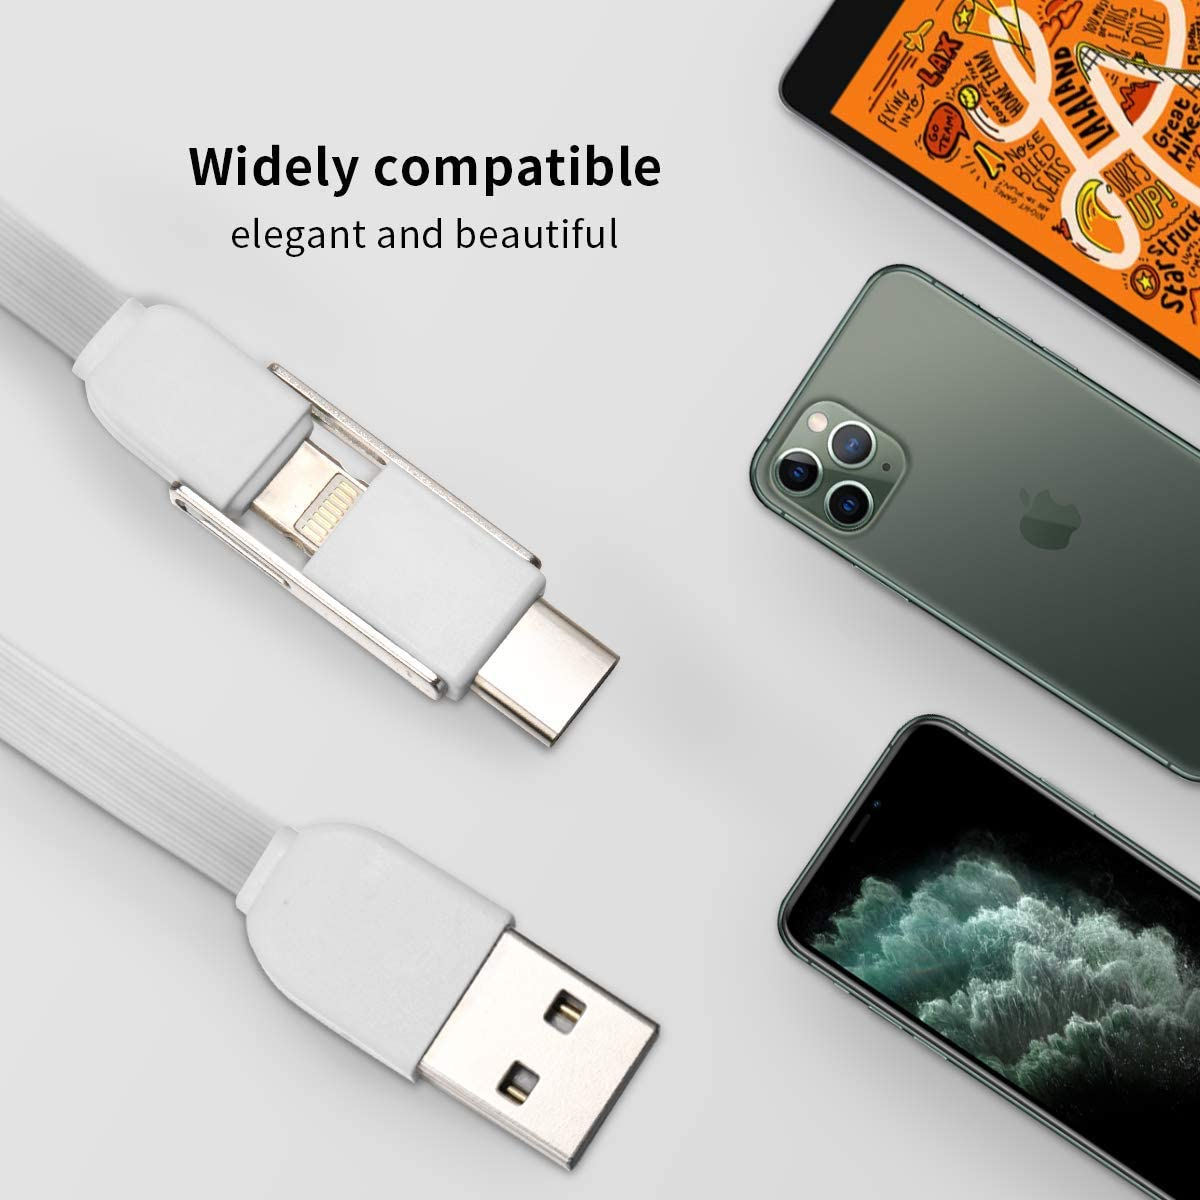 Lightweight and Portable USB Two-in-One Data Cable BANGBIG Funny Pug Life Round Two-in-One Data Cable